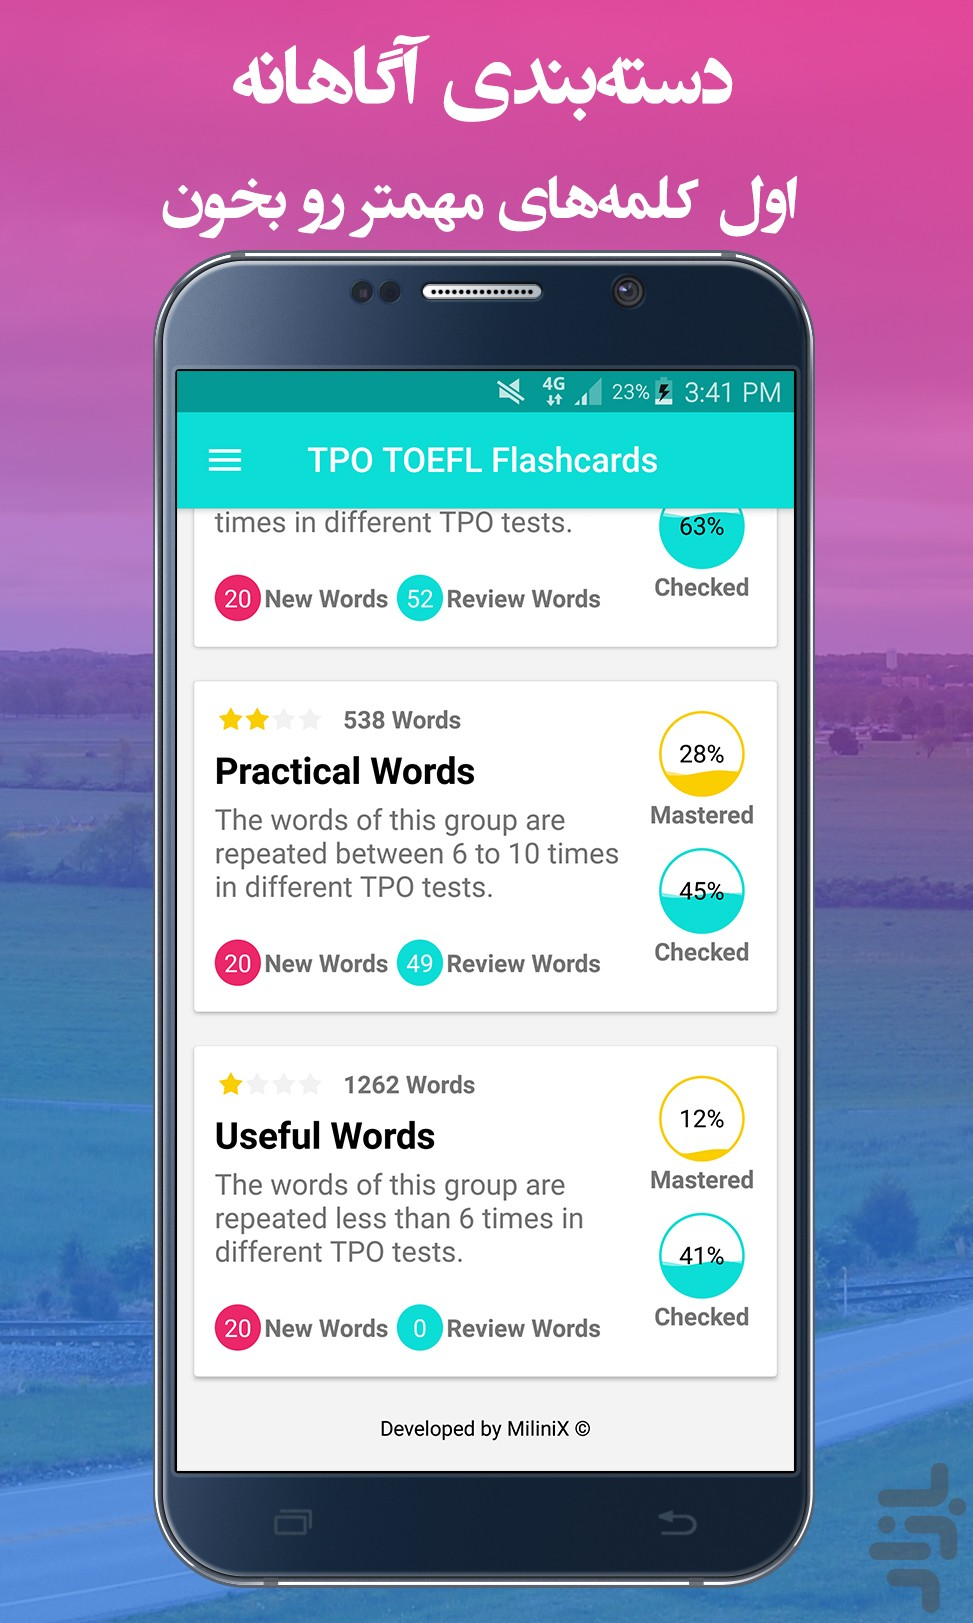 TPO TOEFL Flashcards for Android - Download | Cafe Bazaar